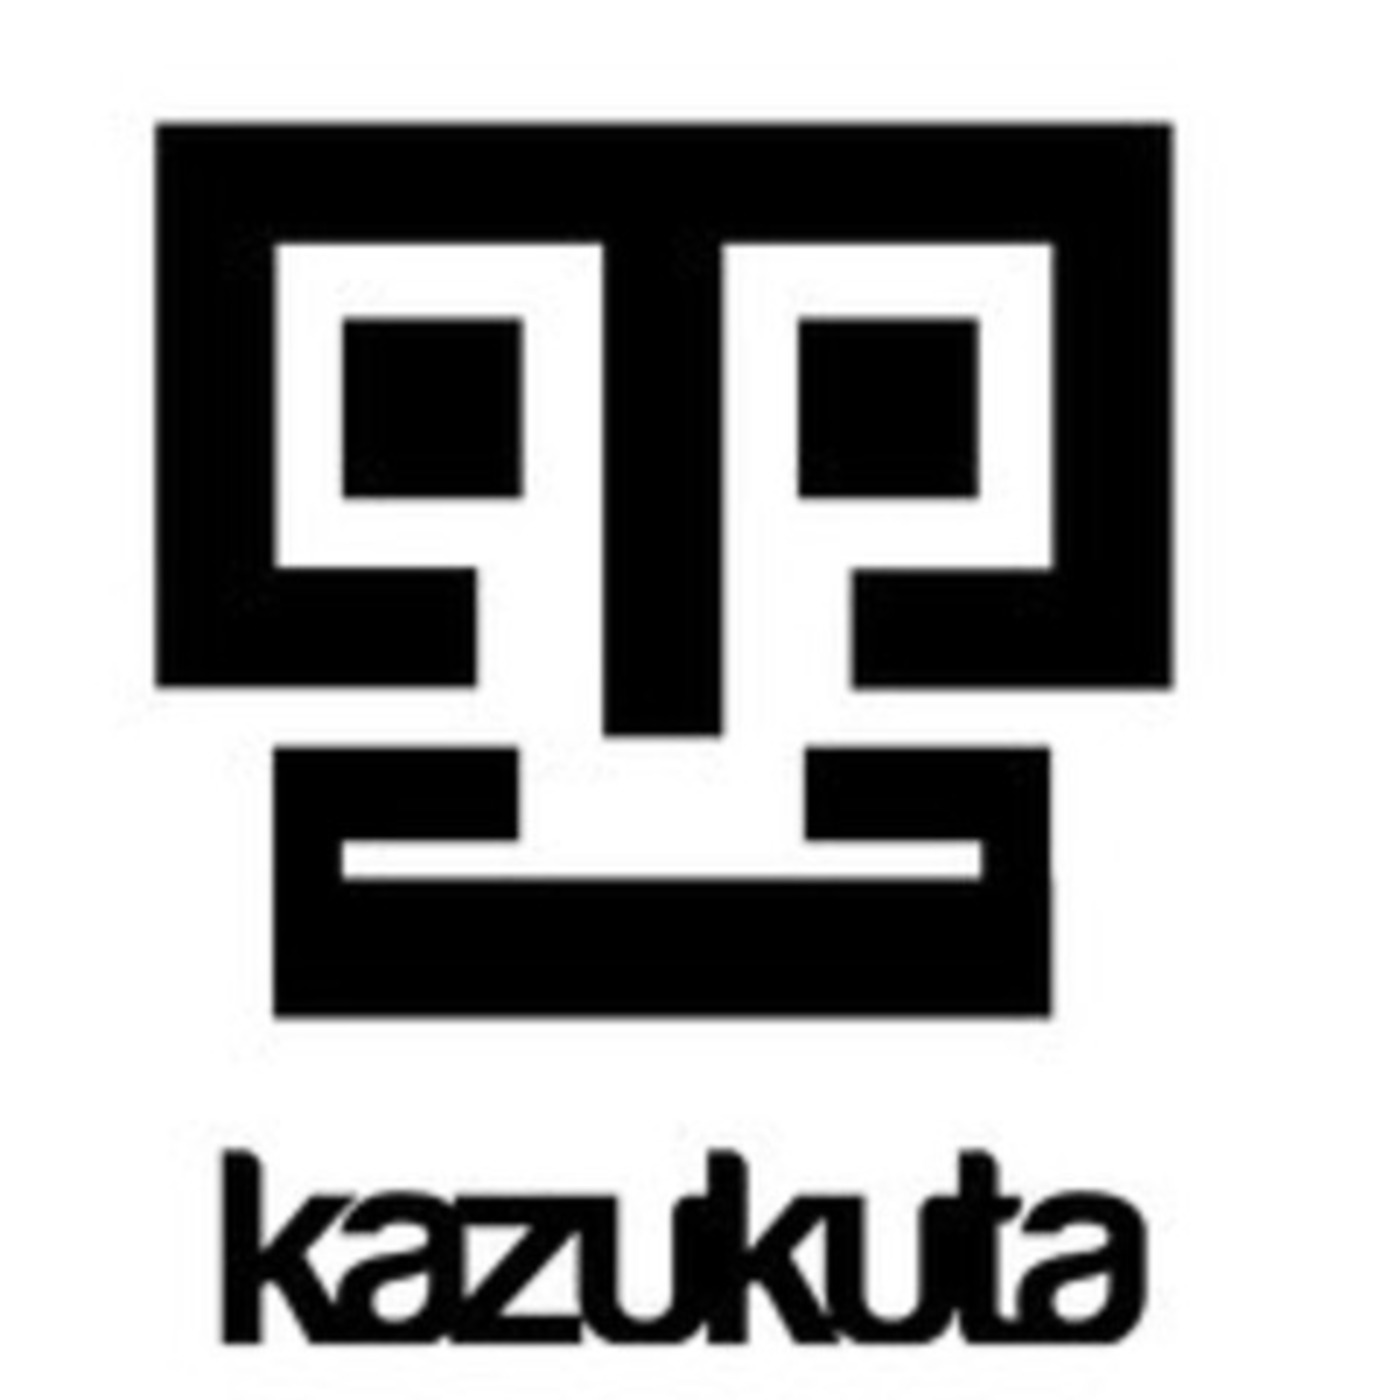 Kazukuta Records' Podcast